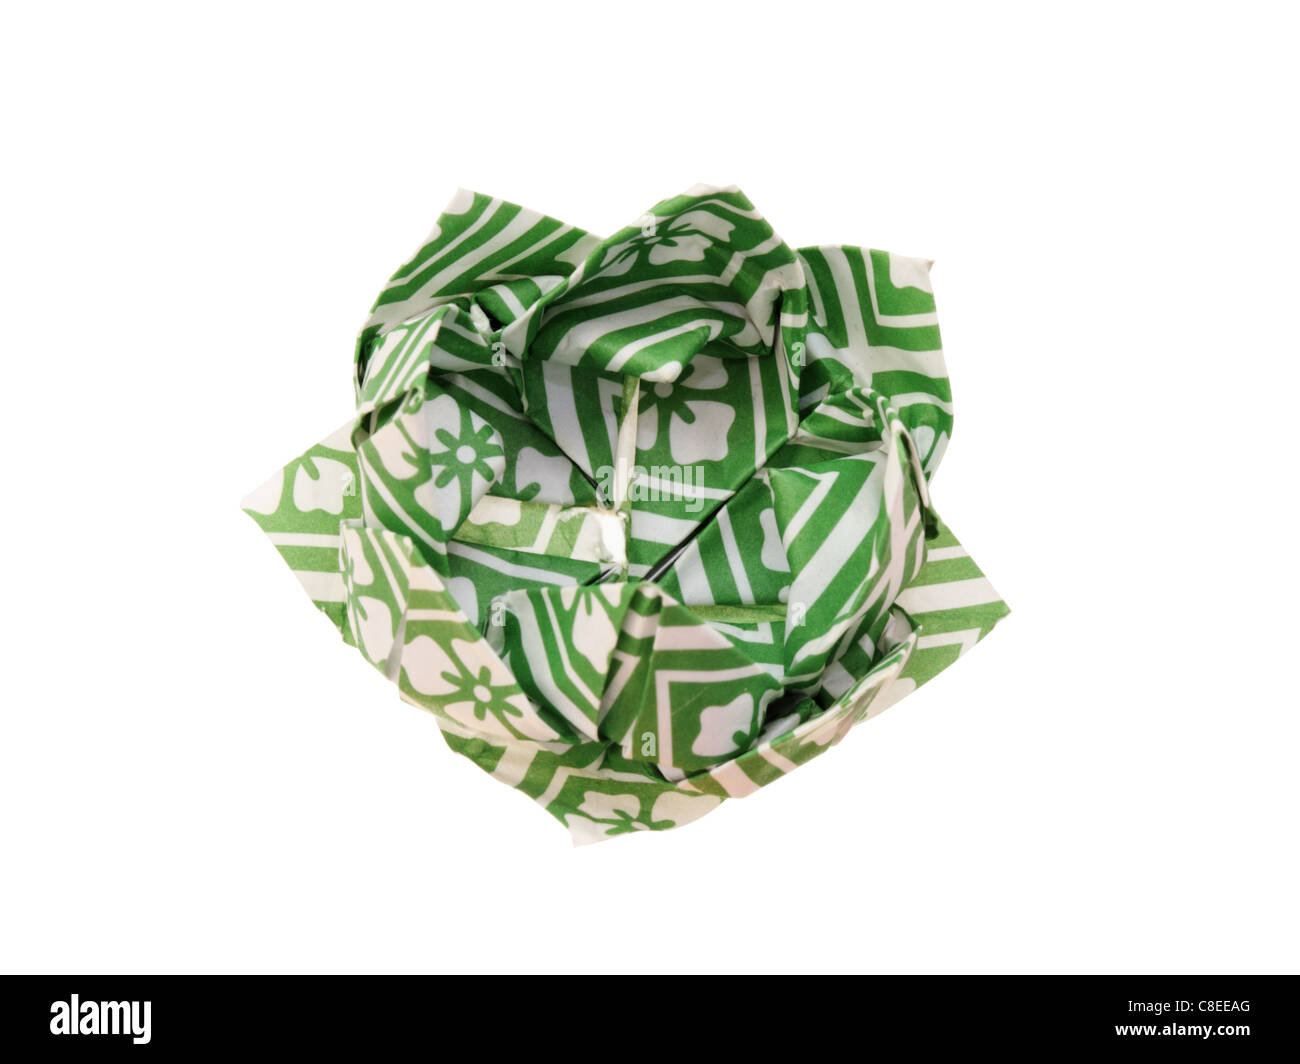 origami lotus flower made from green and white patterned paper isolated on white - Stock Image